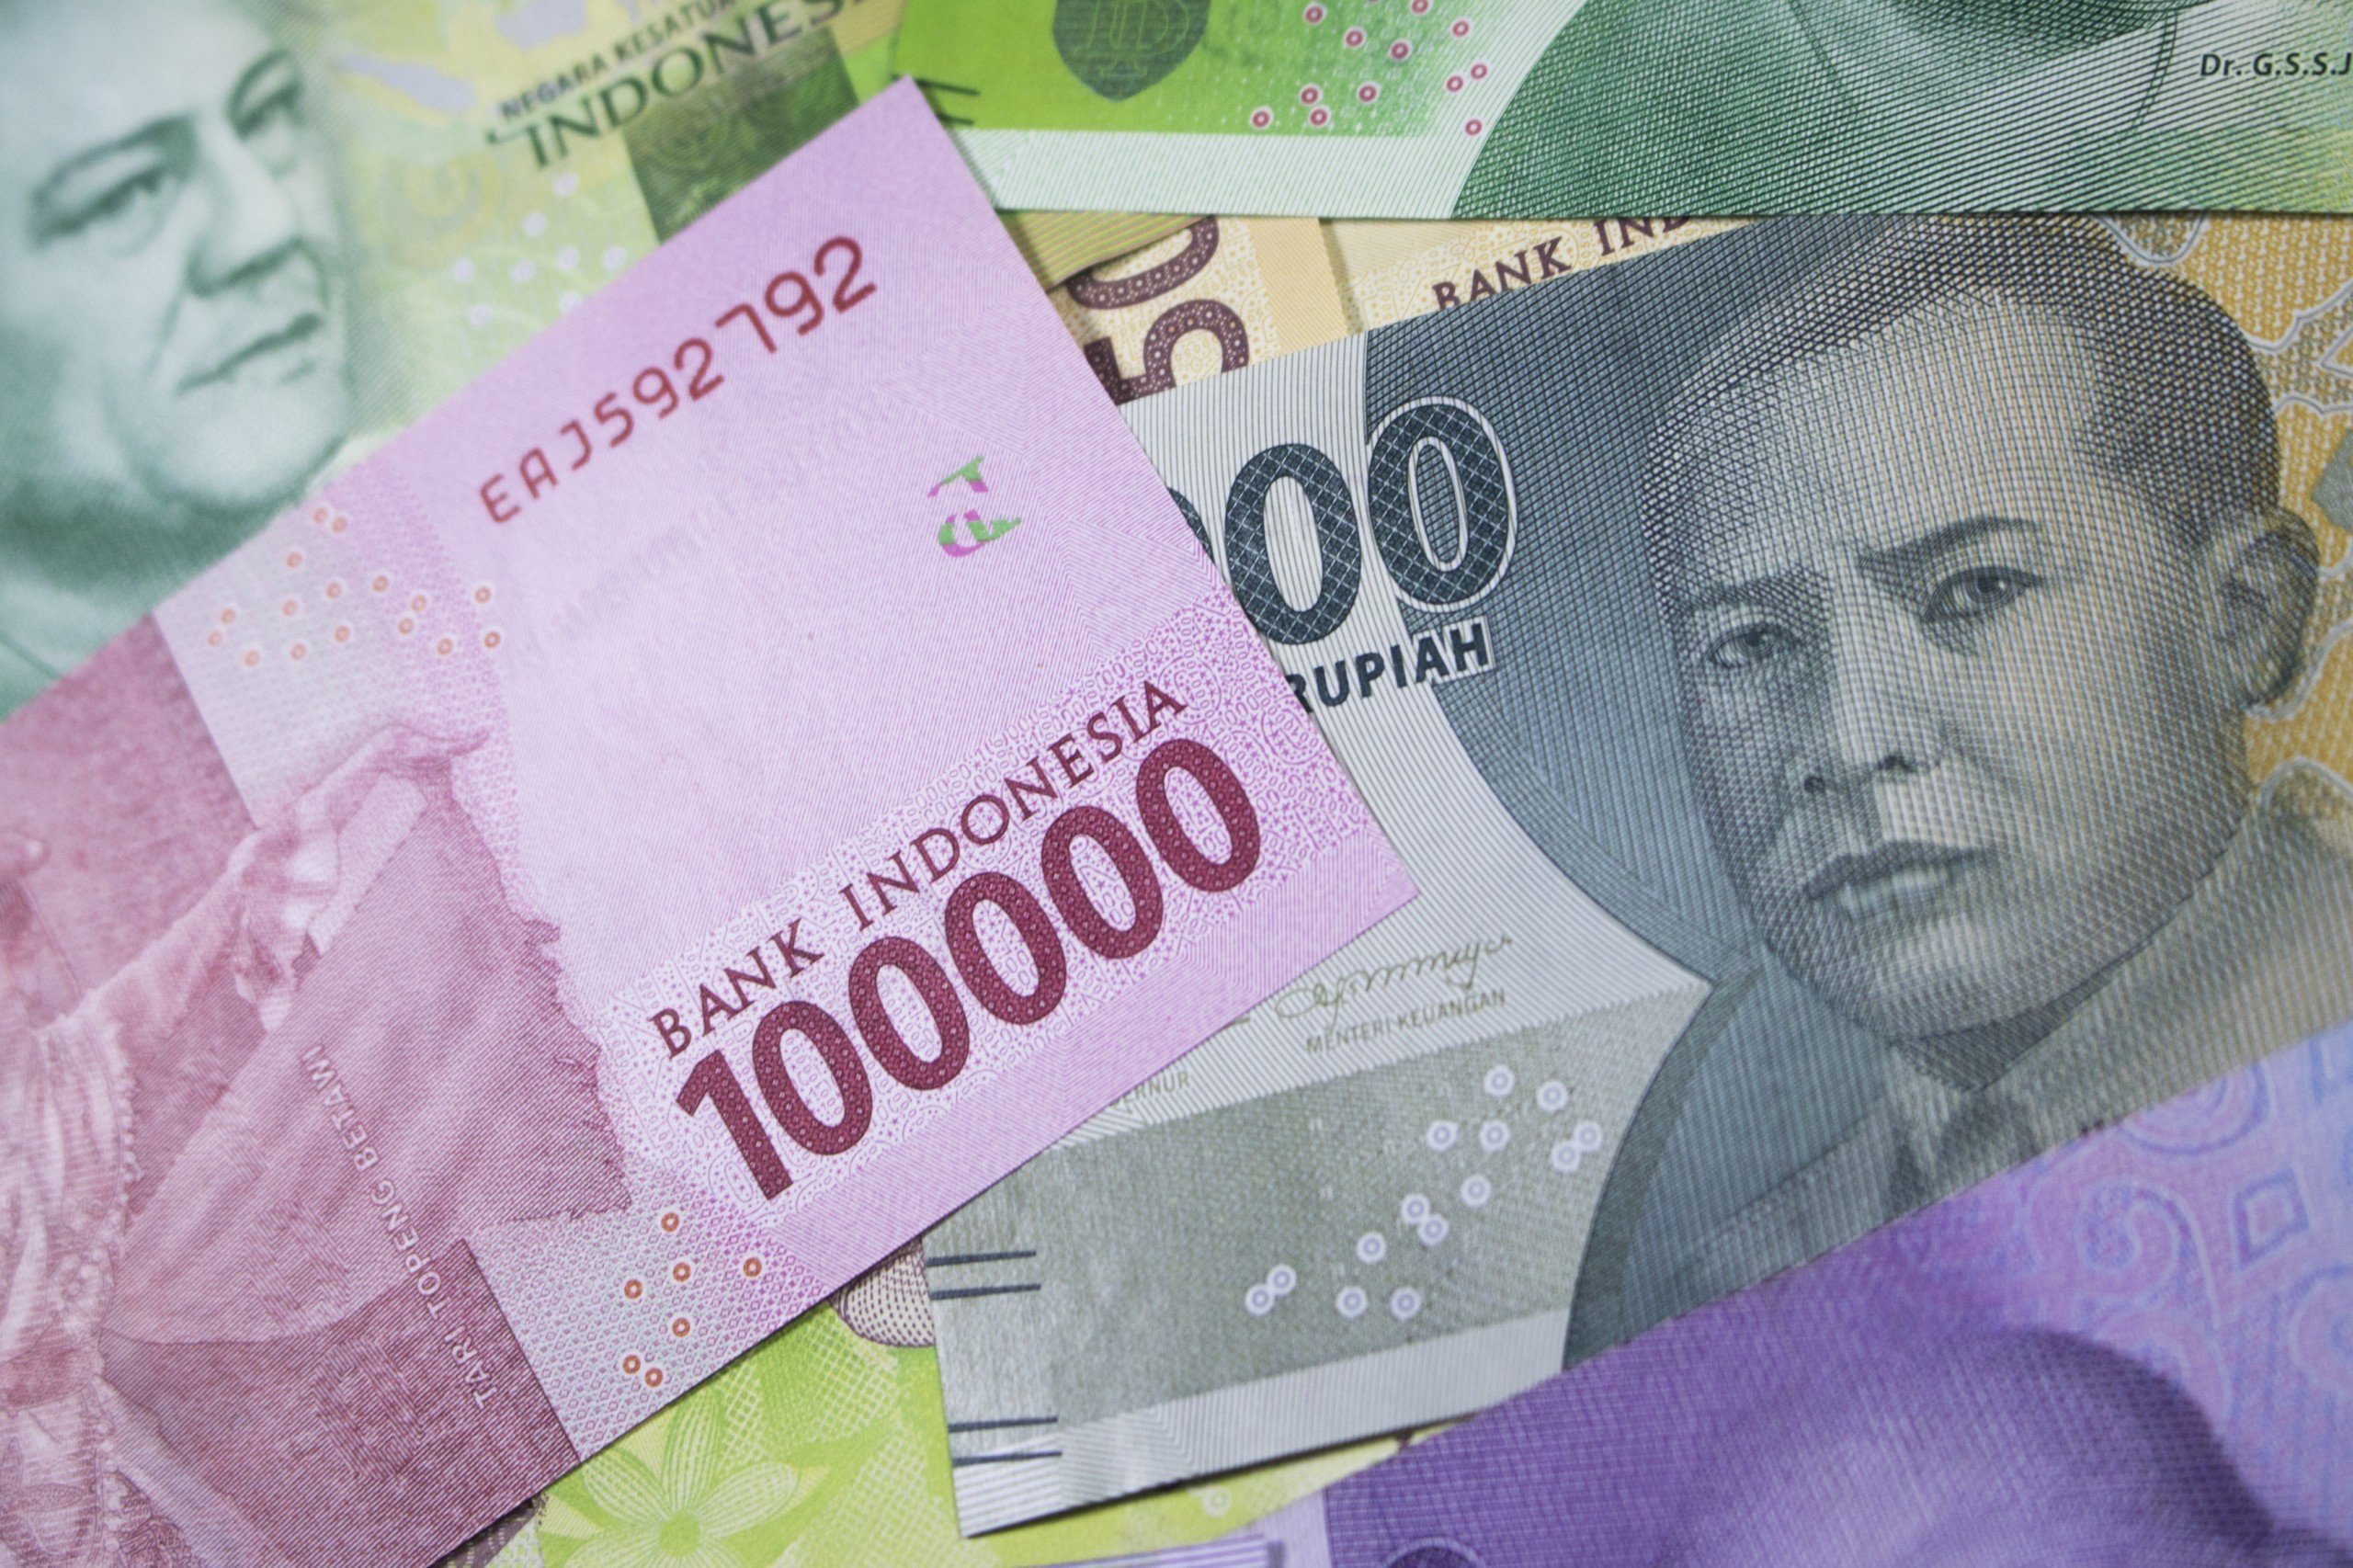 Indonesian currency